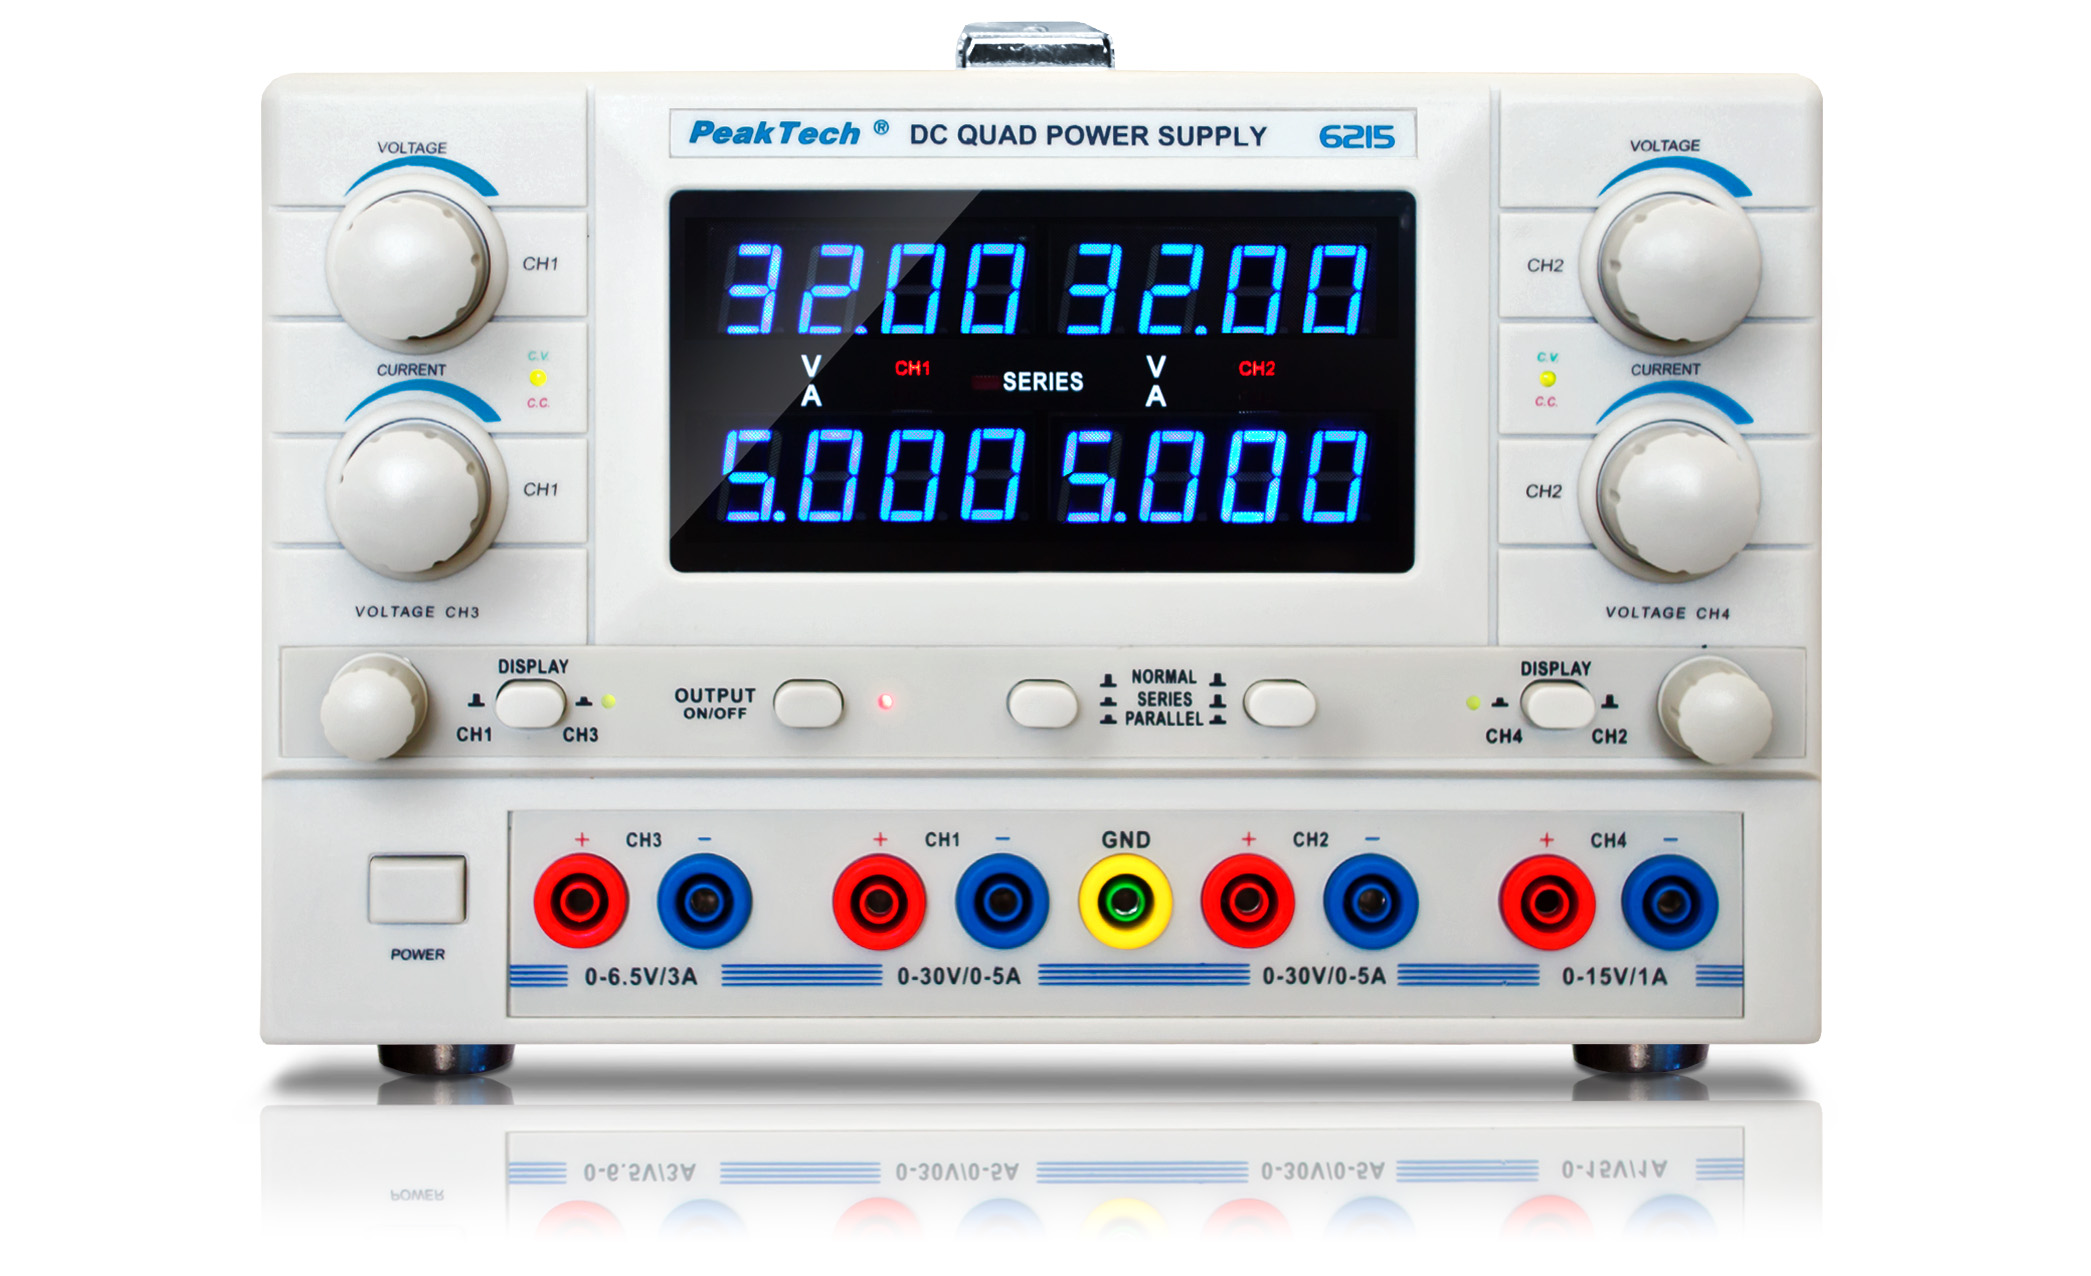 «PeakTech® P 6215» Digital power supply with 4 variable outputs